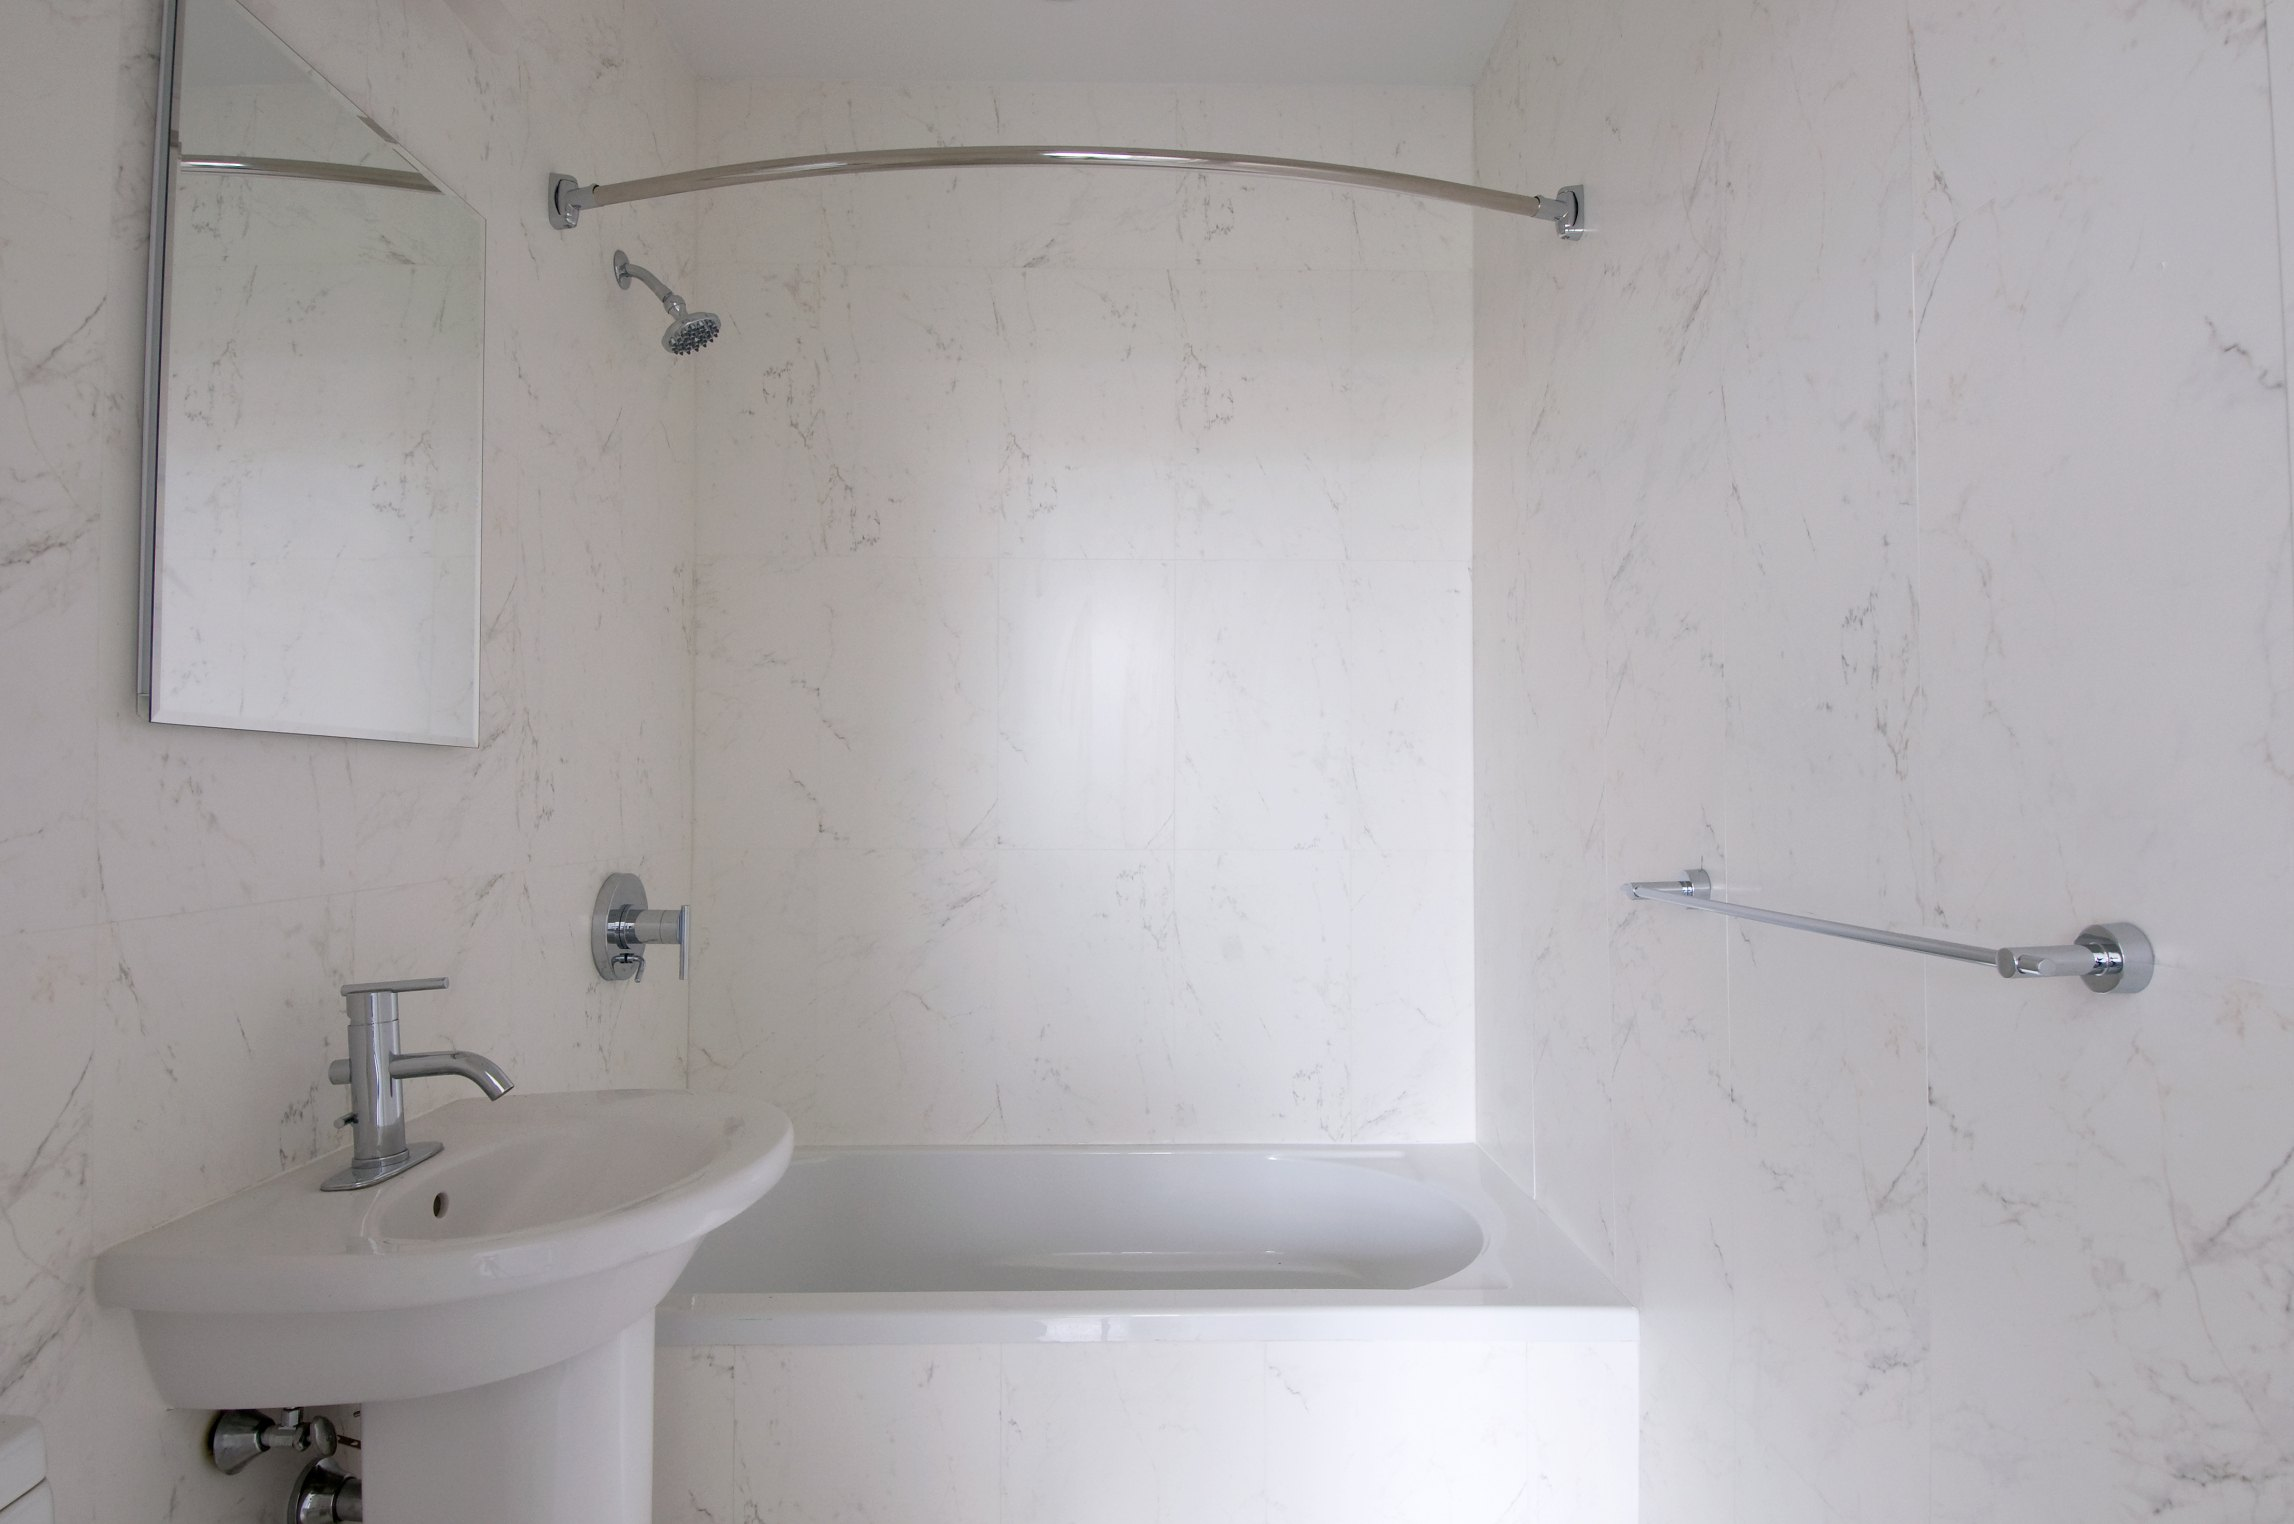 How to Put Wall Trim Around a One-Piece Tub & Shower | eHow